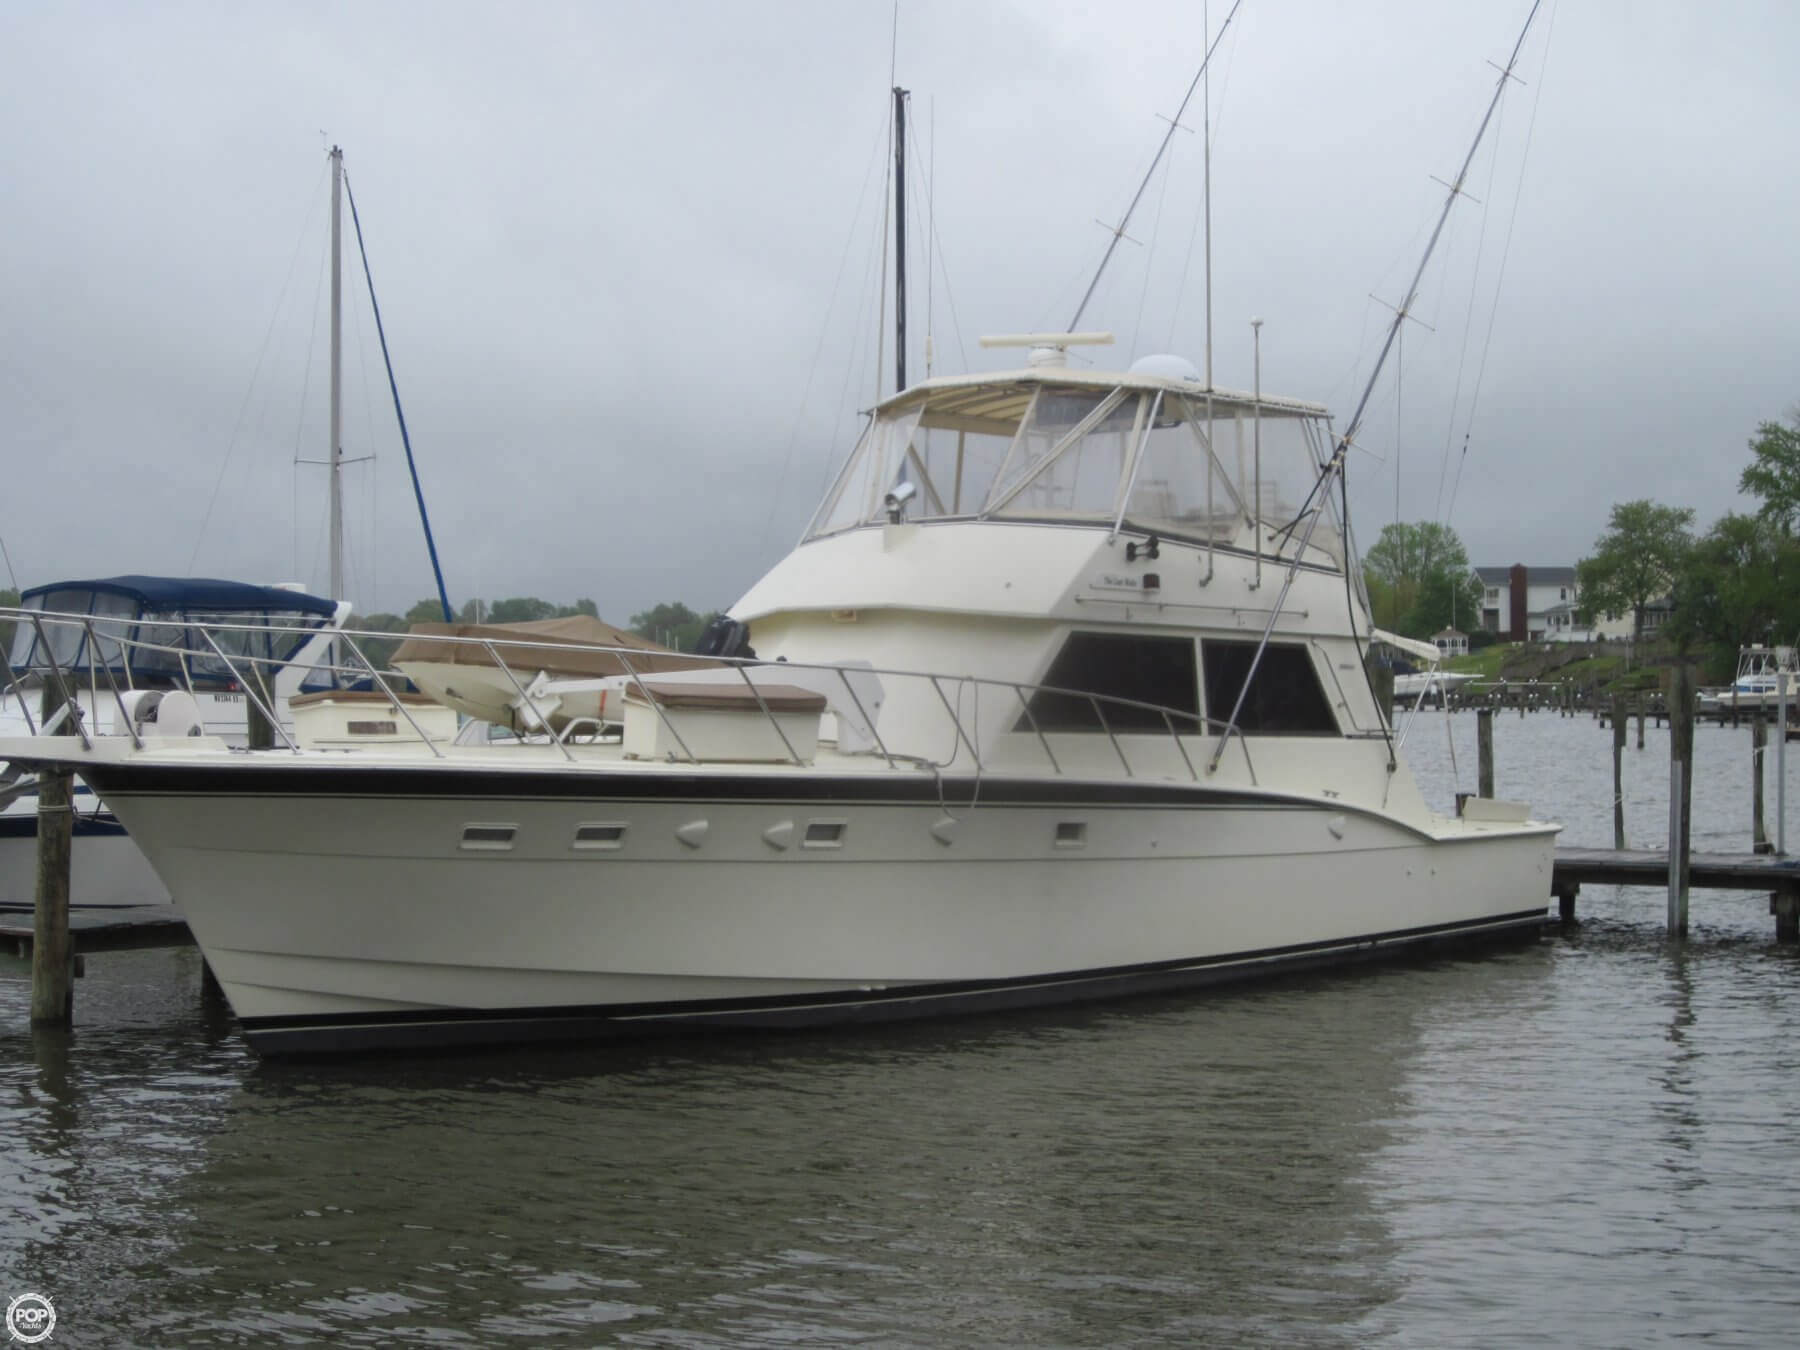 2876285XXL hatteras for sale between $100k and $250k pop yachts Hatteras Sportfish 45C at virtualis.co